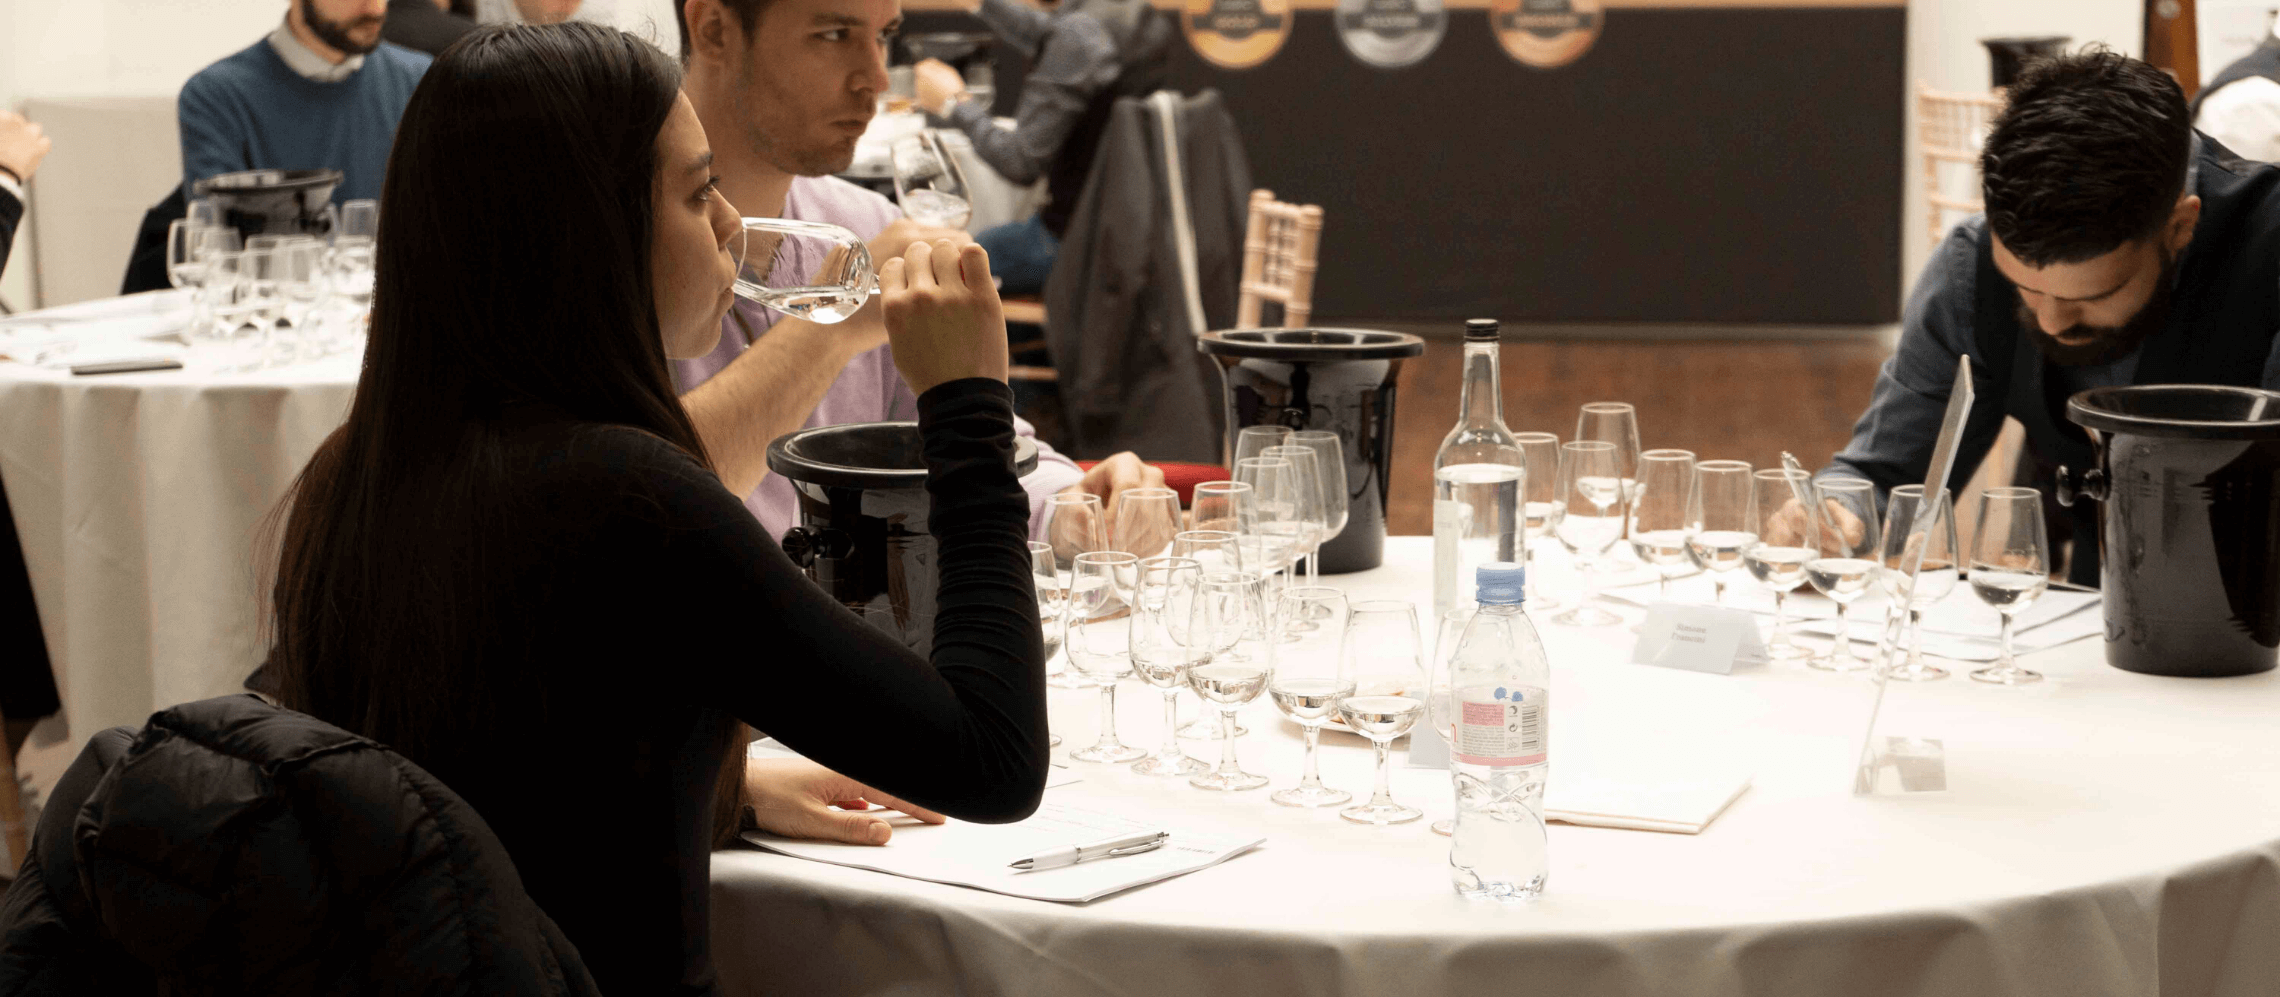 Photo for: A shot for the judges - 2020 London Spirits Competition